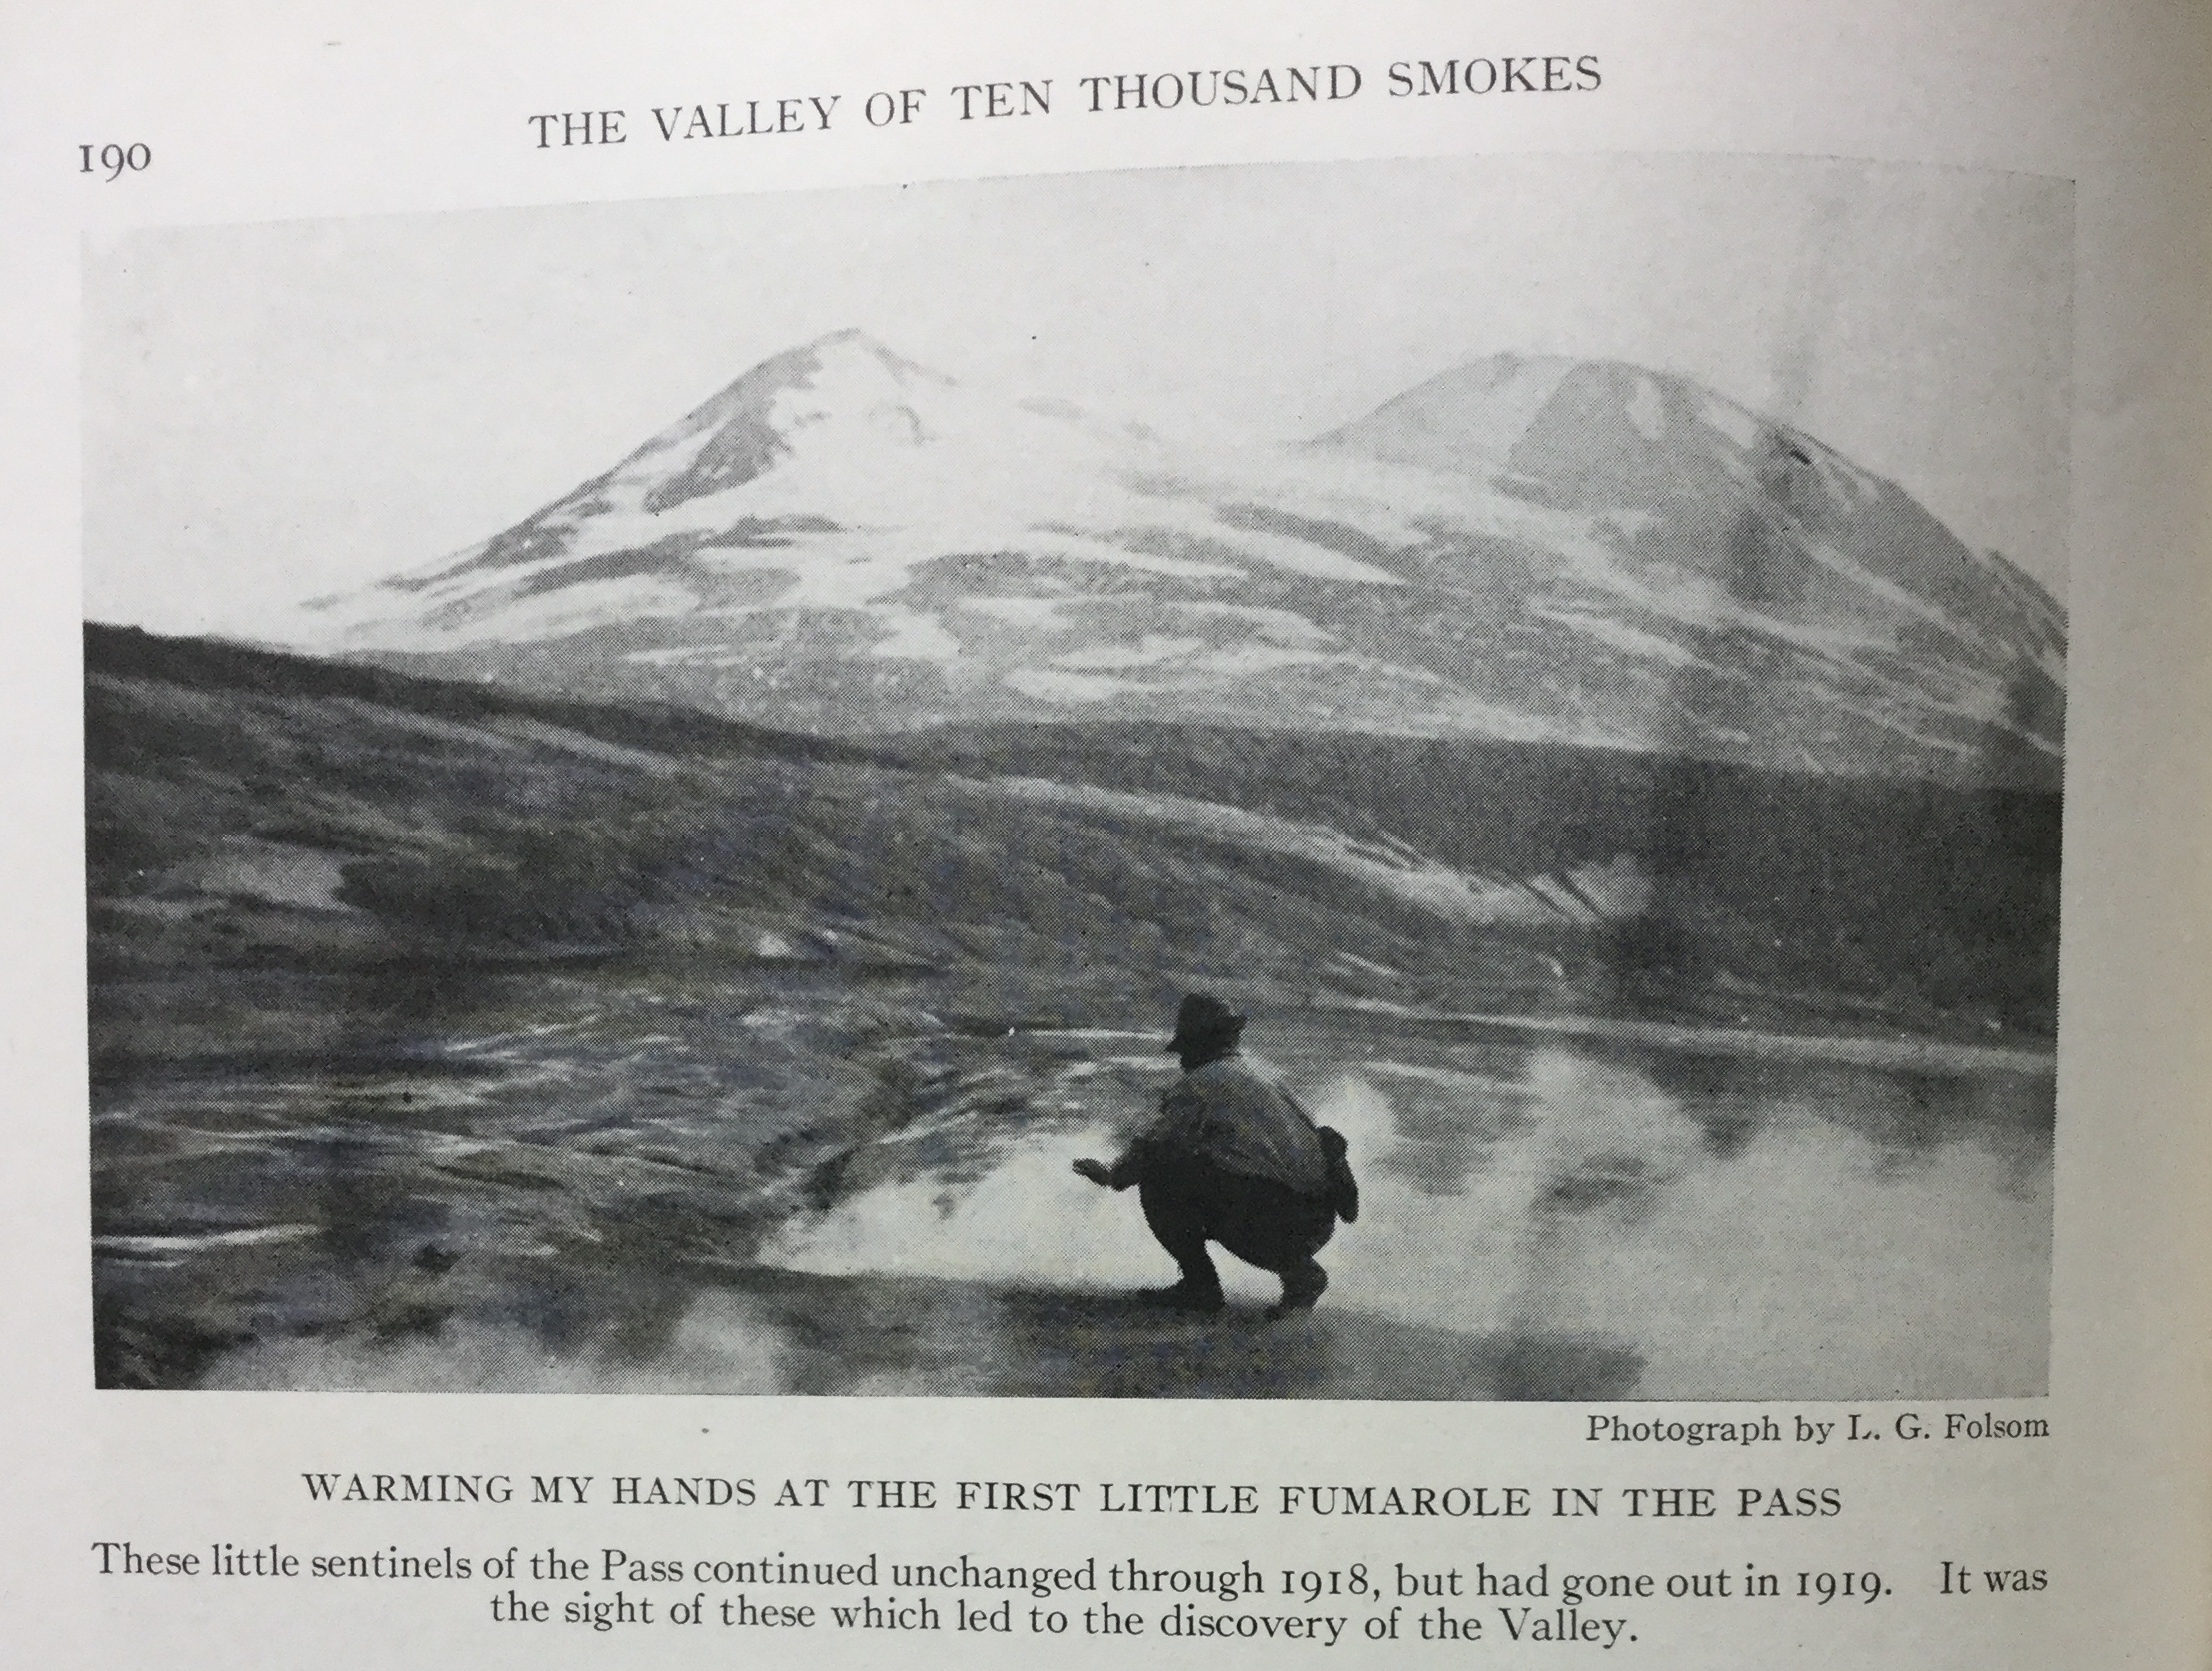 """black and white photo. man squats at center next to small steam vent. a snow capped mountain is o the horizon. text reads """"190. The Valley of Ten Thousand Smokes. Photograph by L. G. Folsom. Warming my hands at the first little fumarole in the pass. These little sentinels of the Pass continued unchanged through 1918, but had gone out in 1919. It was the sight of these which led to the discovery of the Valley."""""""